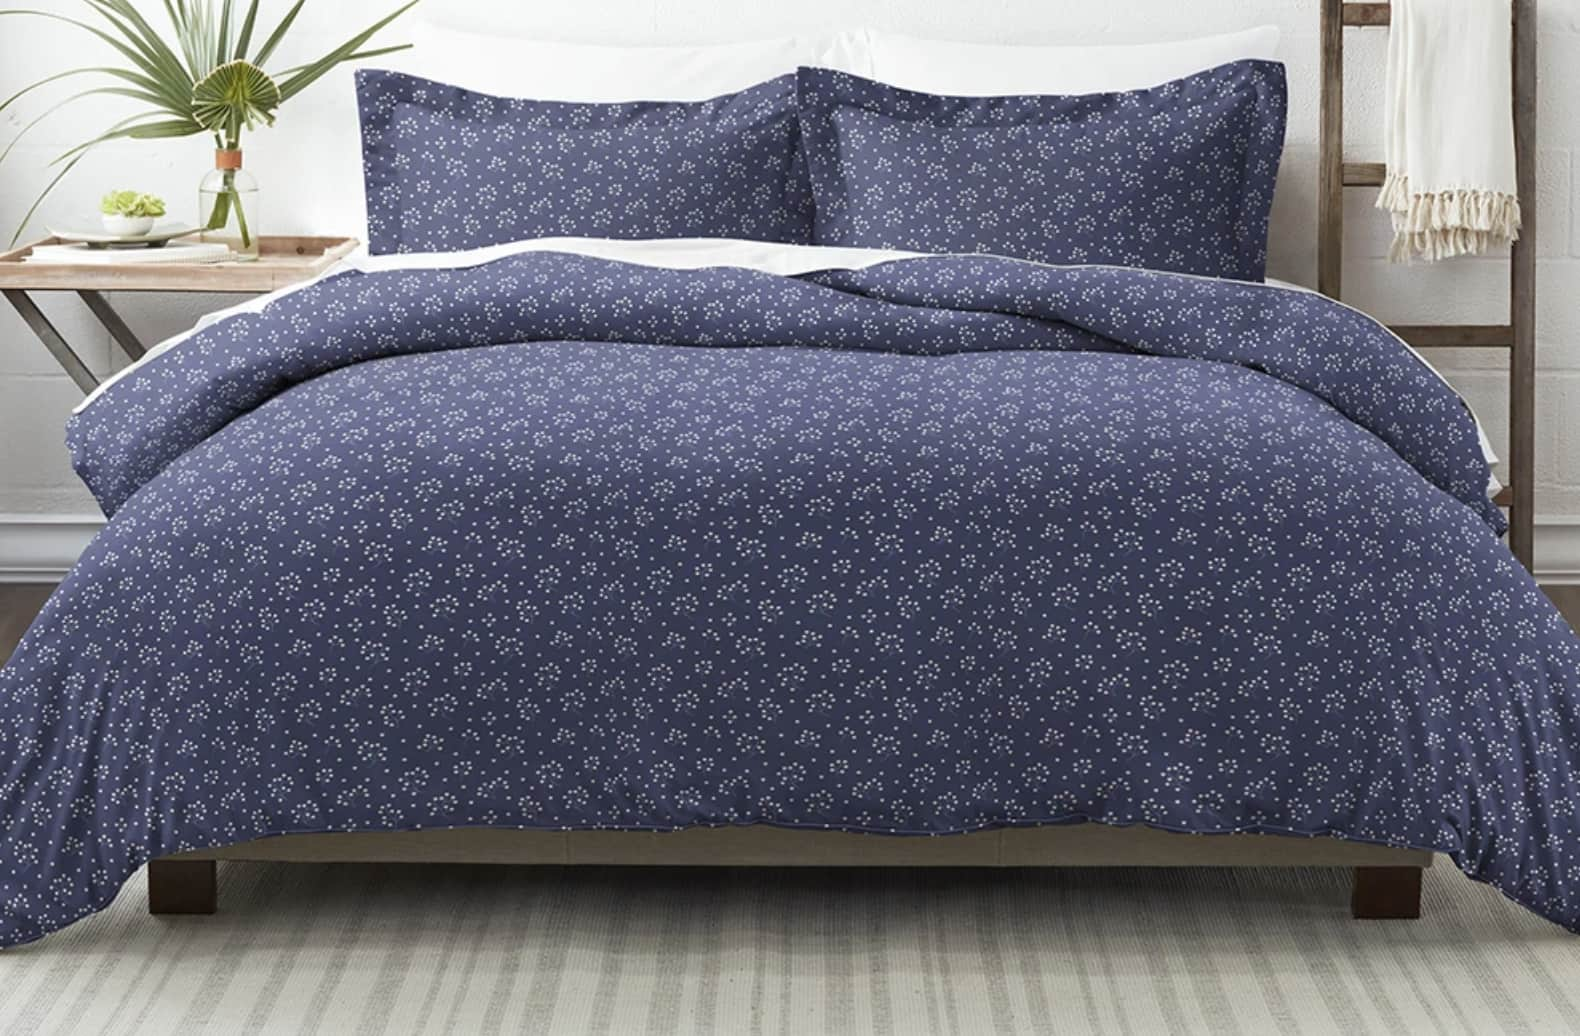 Linen's & Hutch Patterned Duvet Cover Sets